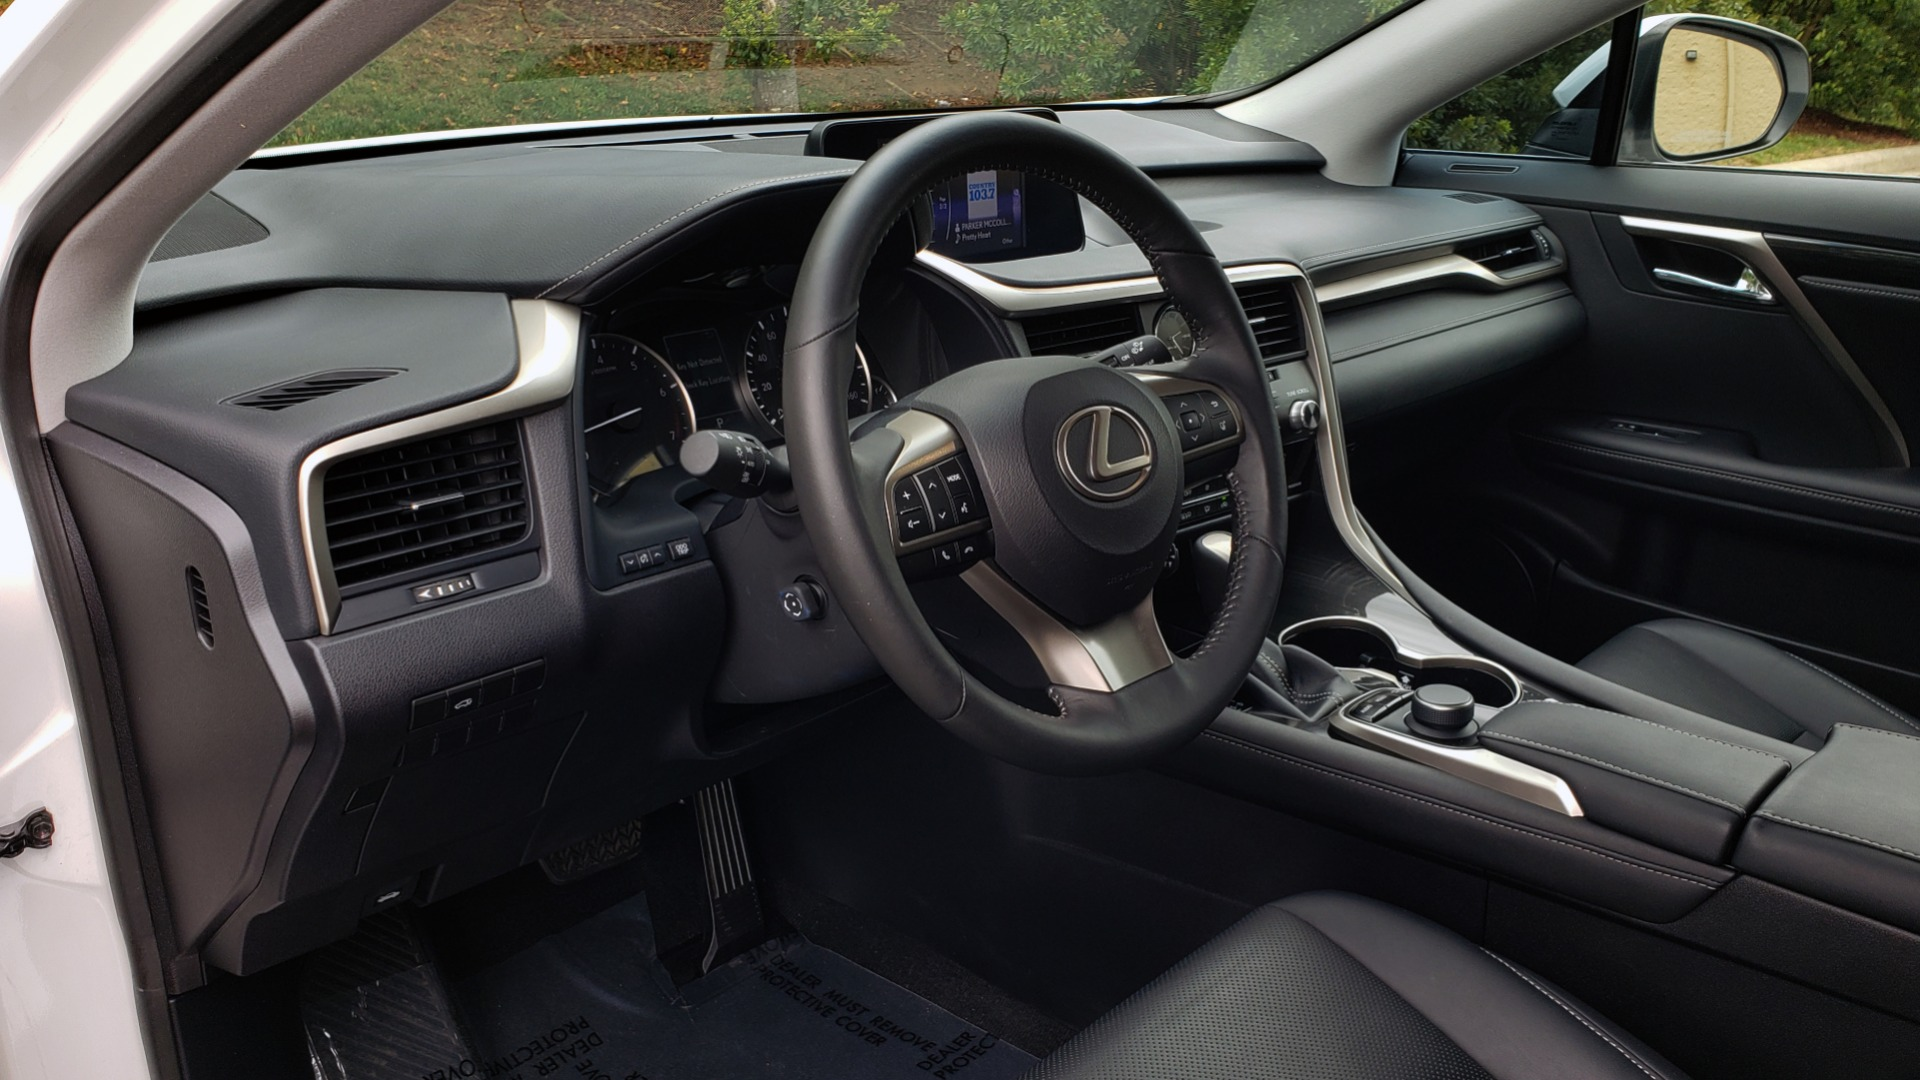 Used 2016 Lexus RX 350 FWD / 4-DR / 3.5L V6 / 8-SPD AUTO / LEATHER / REARVIEW for sale $31,995 at Formula Imports in Charlotte NC 28227 39